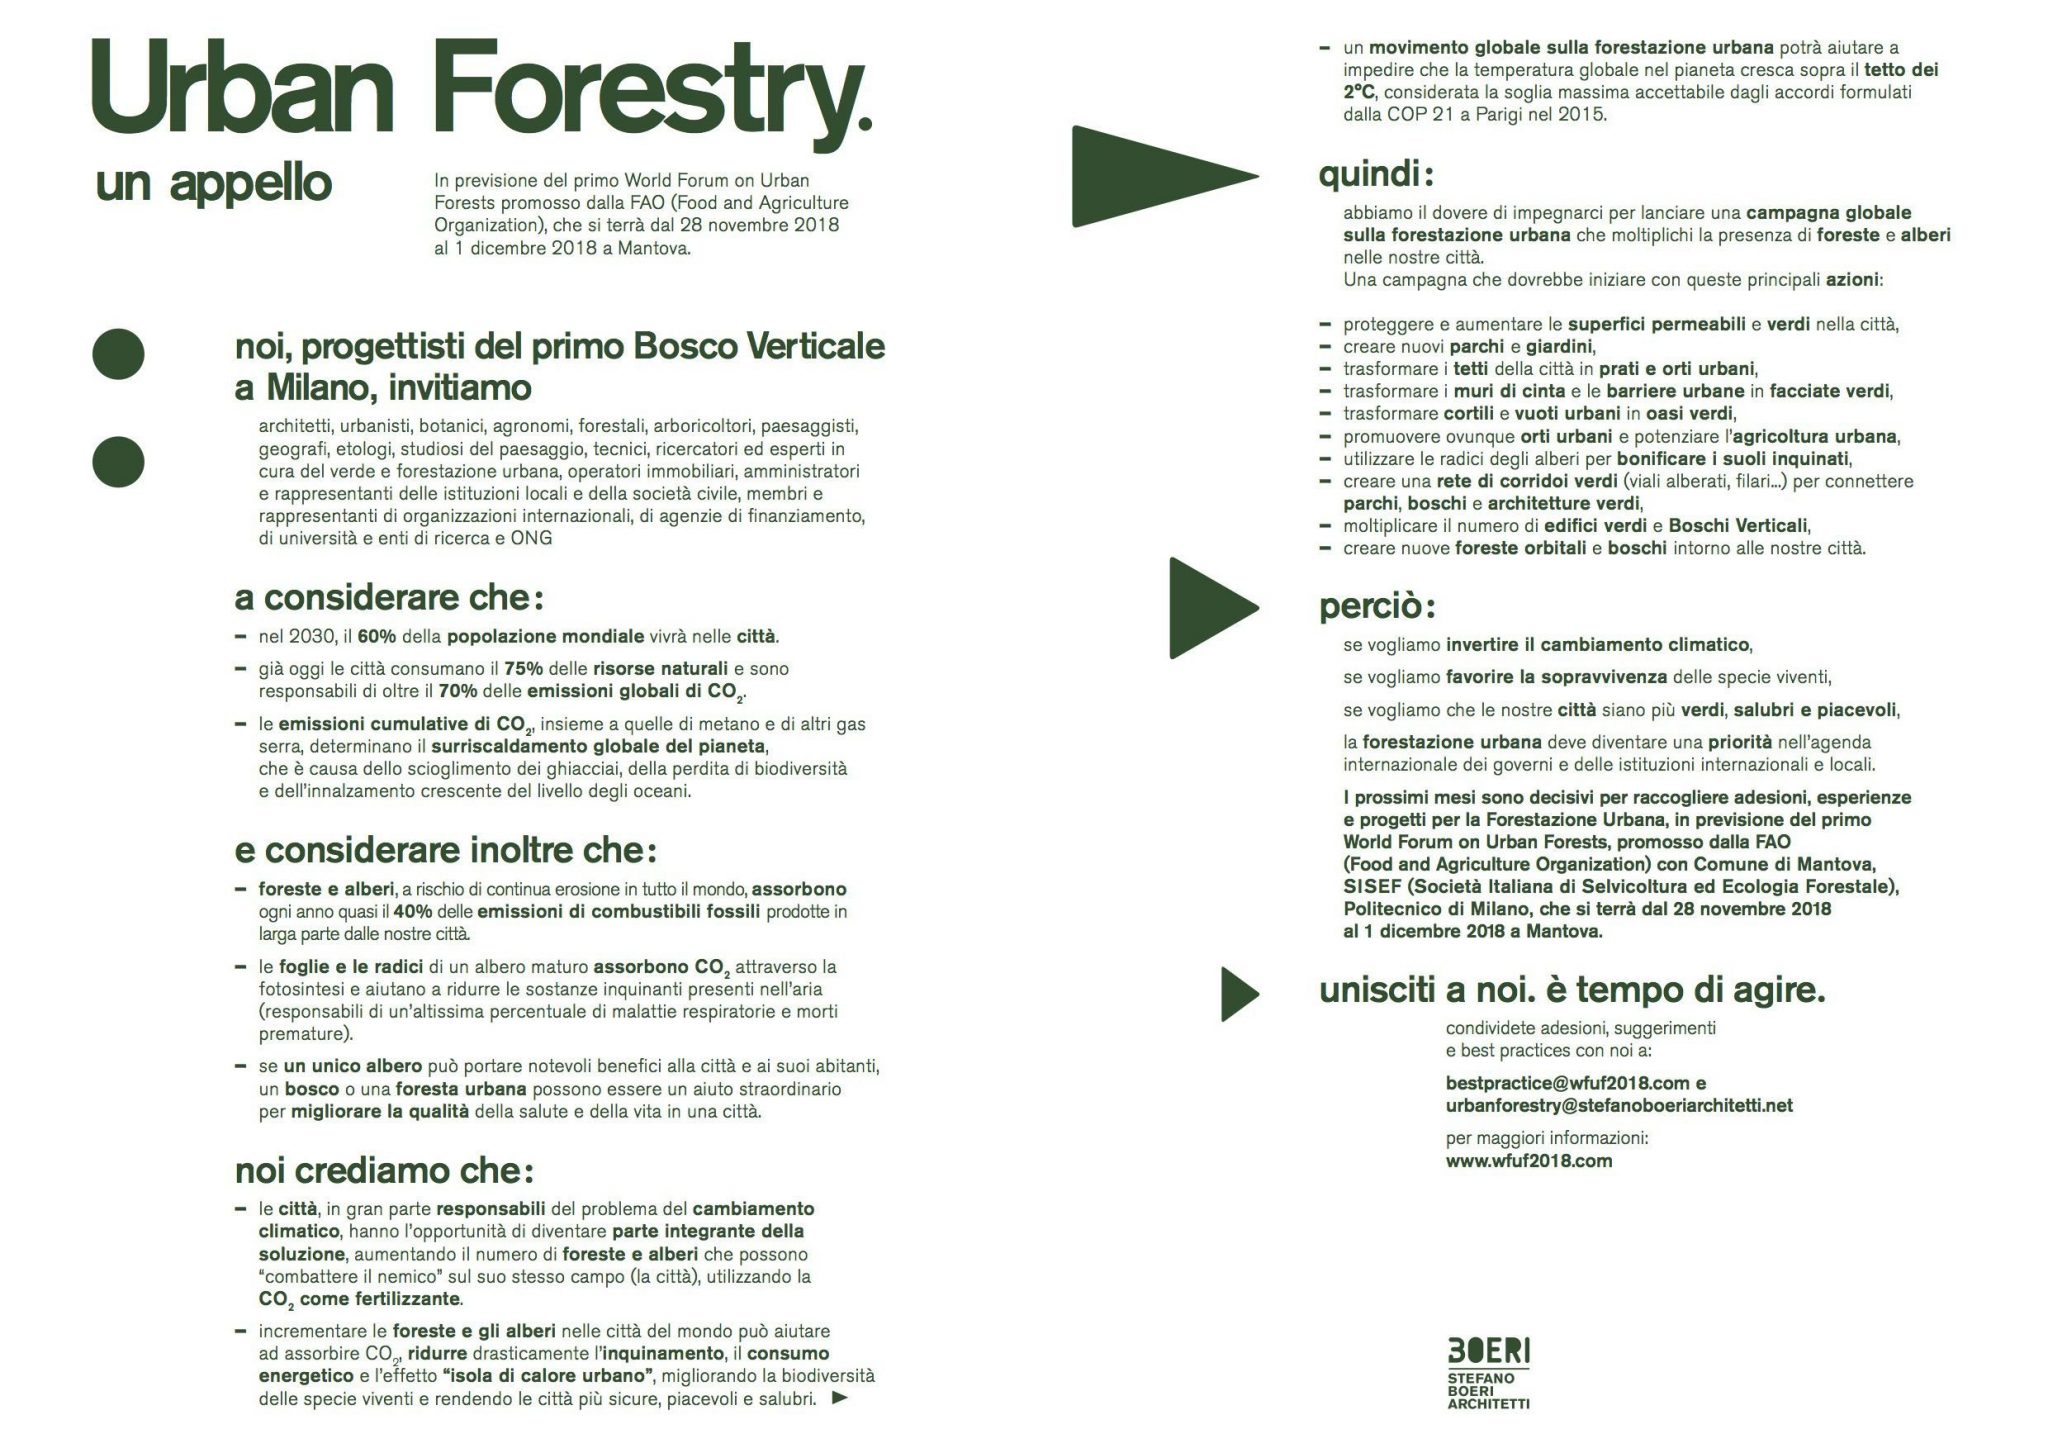 Agenzie Immobiliari Mantova urban forestry, a call to action | stefano boeri architetti